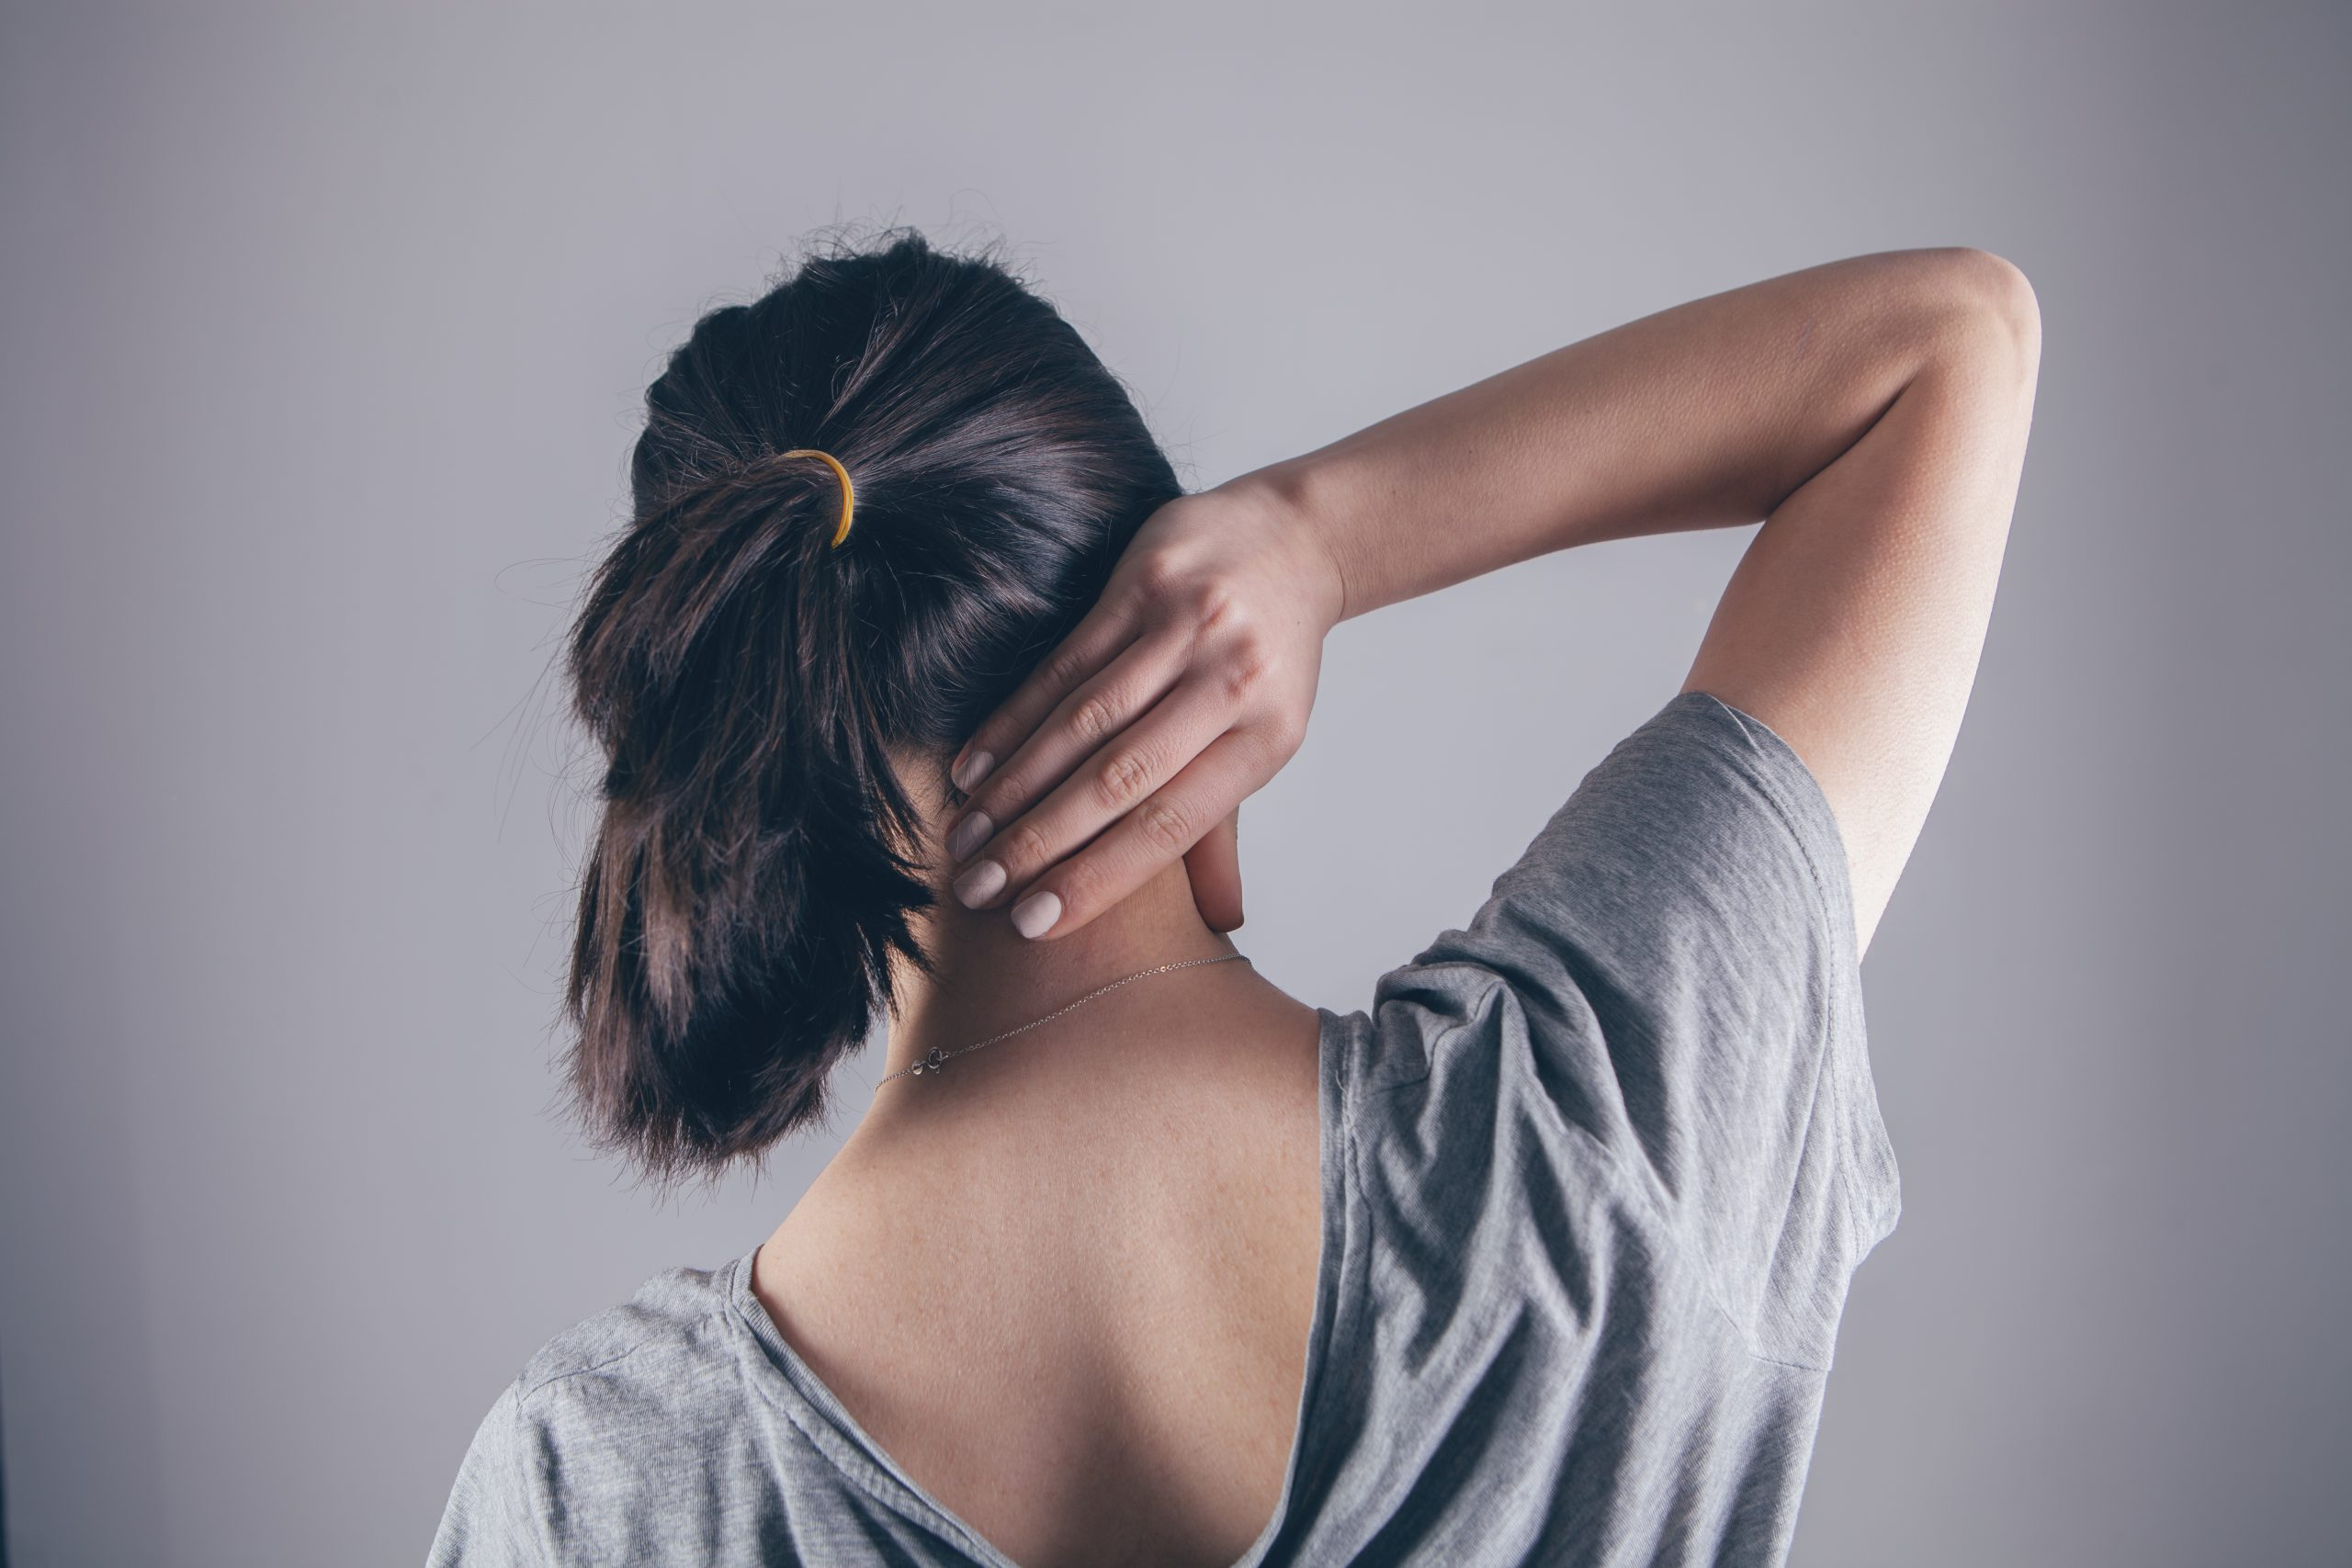 close-up on a woman's hand massaging her neck. Girl's neck hurts